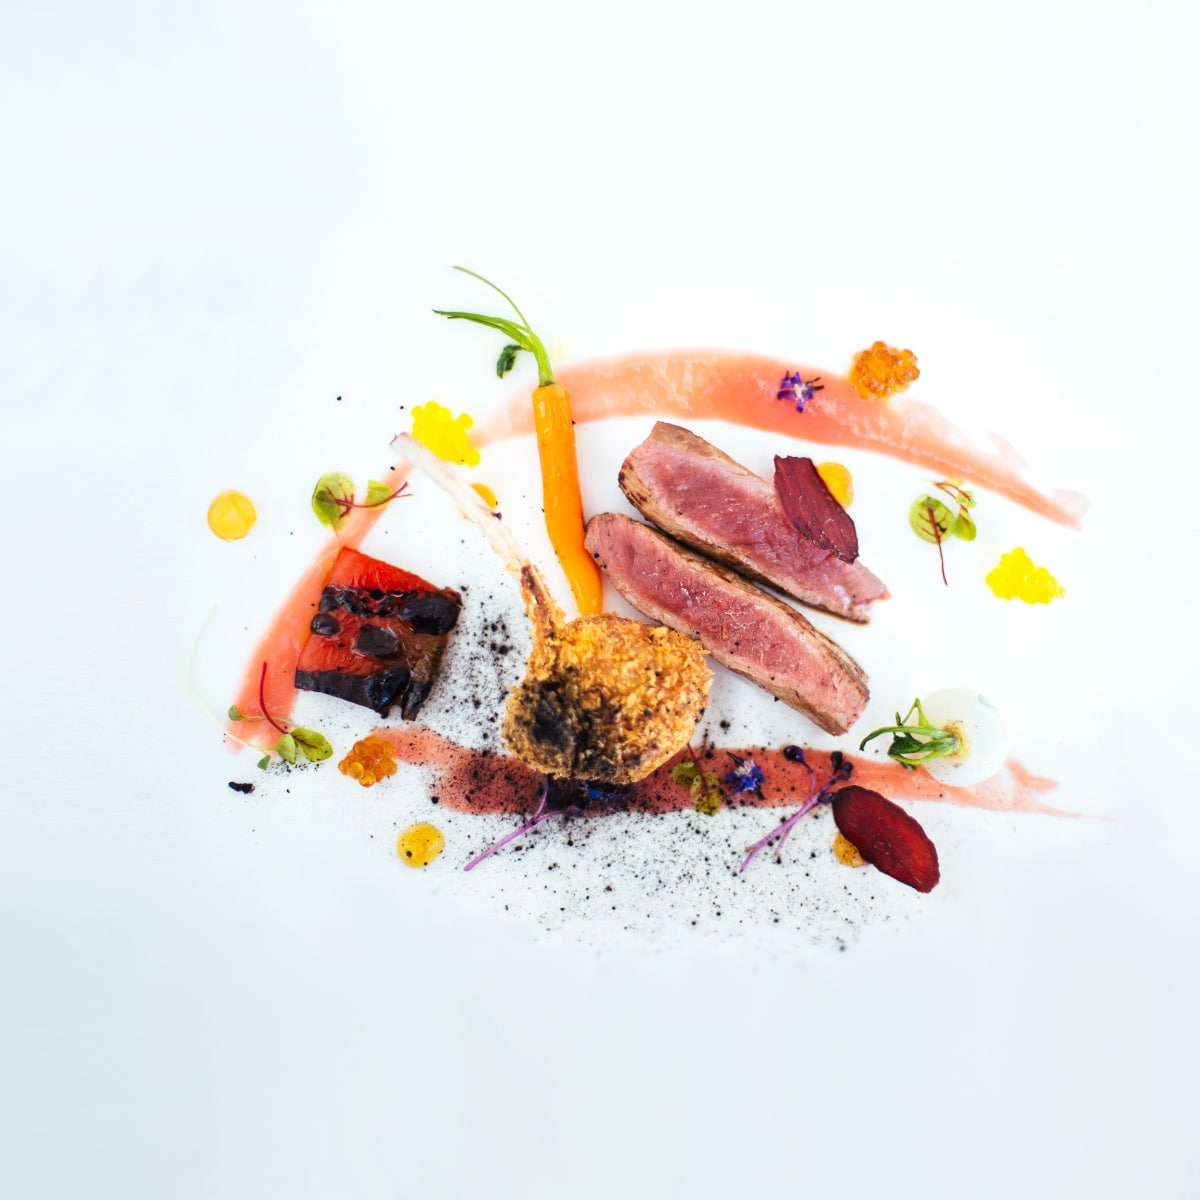 Vip michelin star food tour food tour in rome for Cuisine vipp